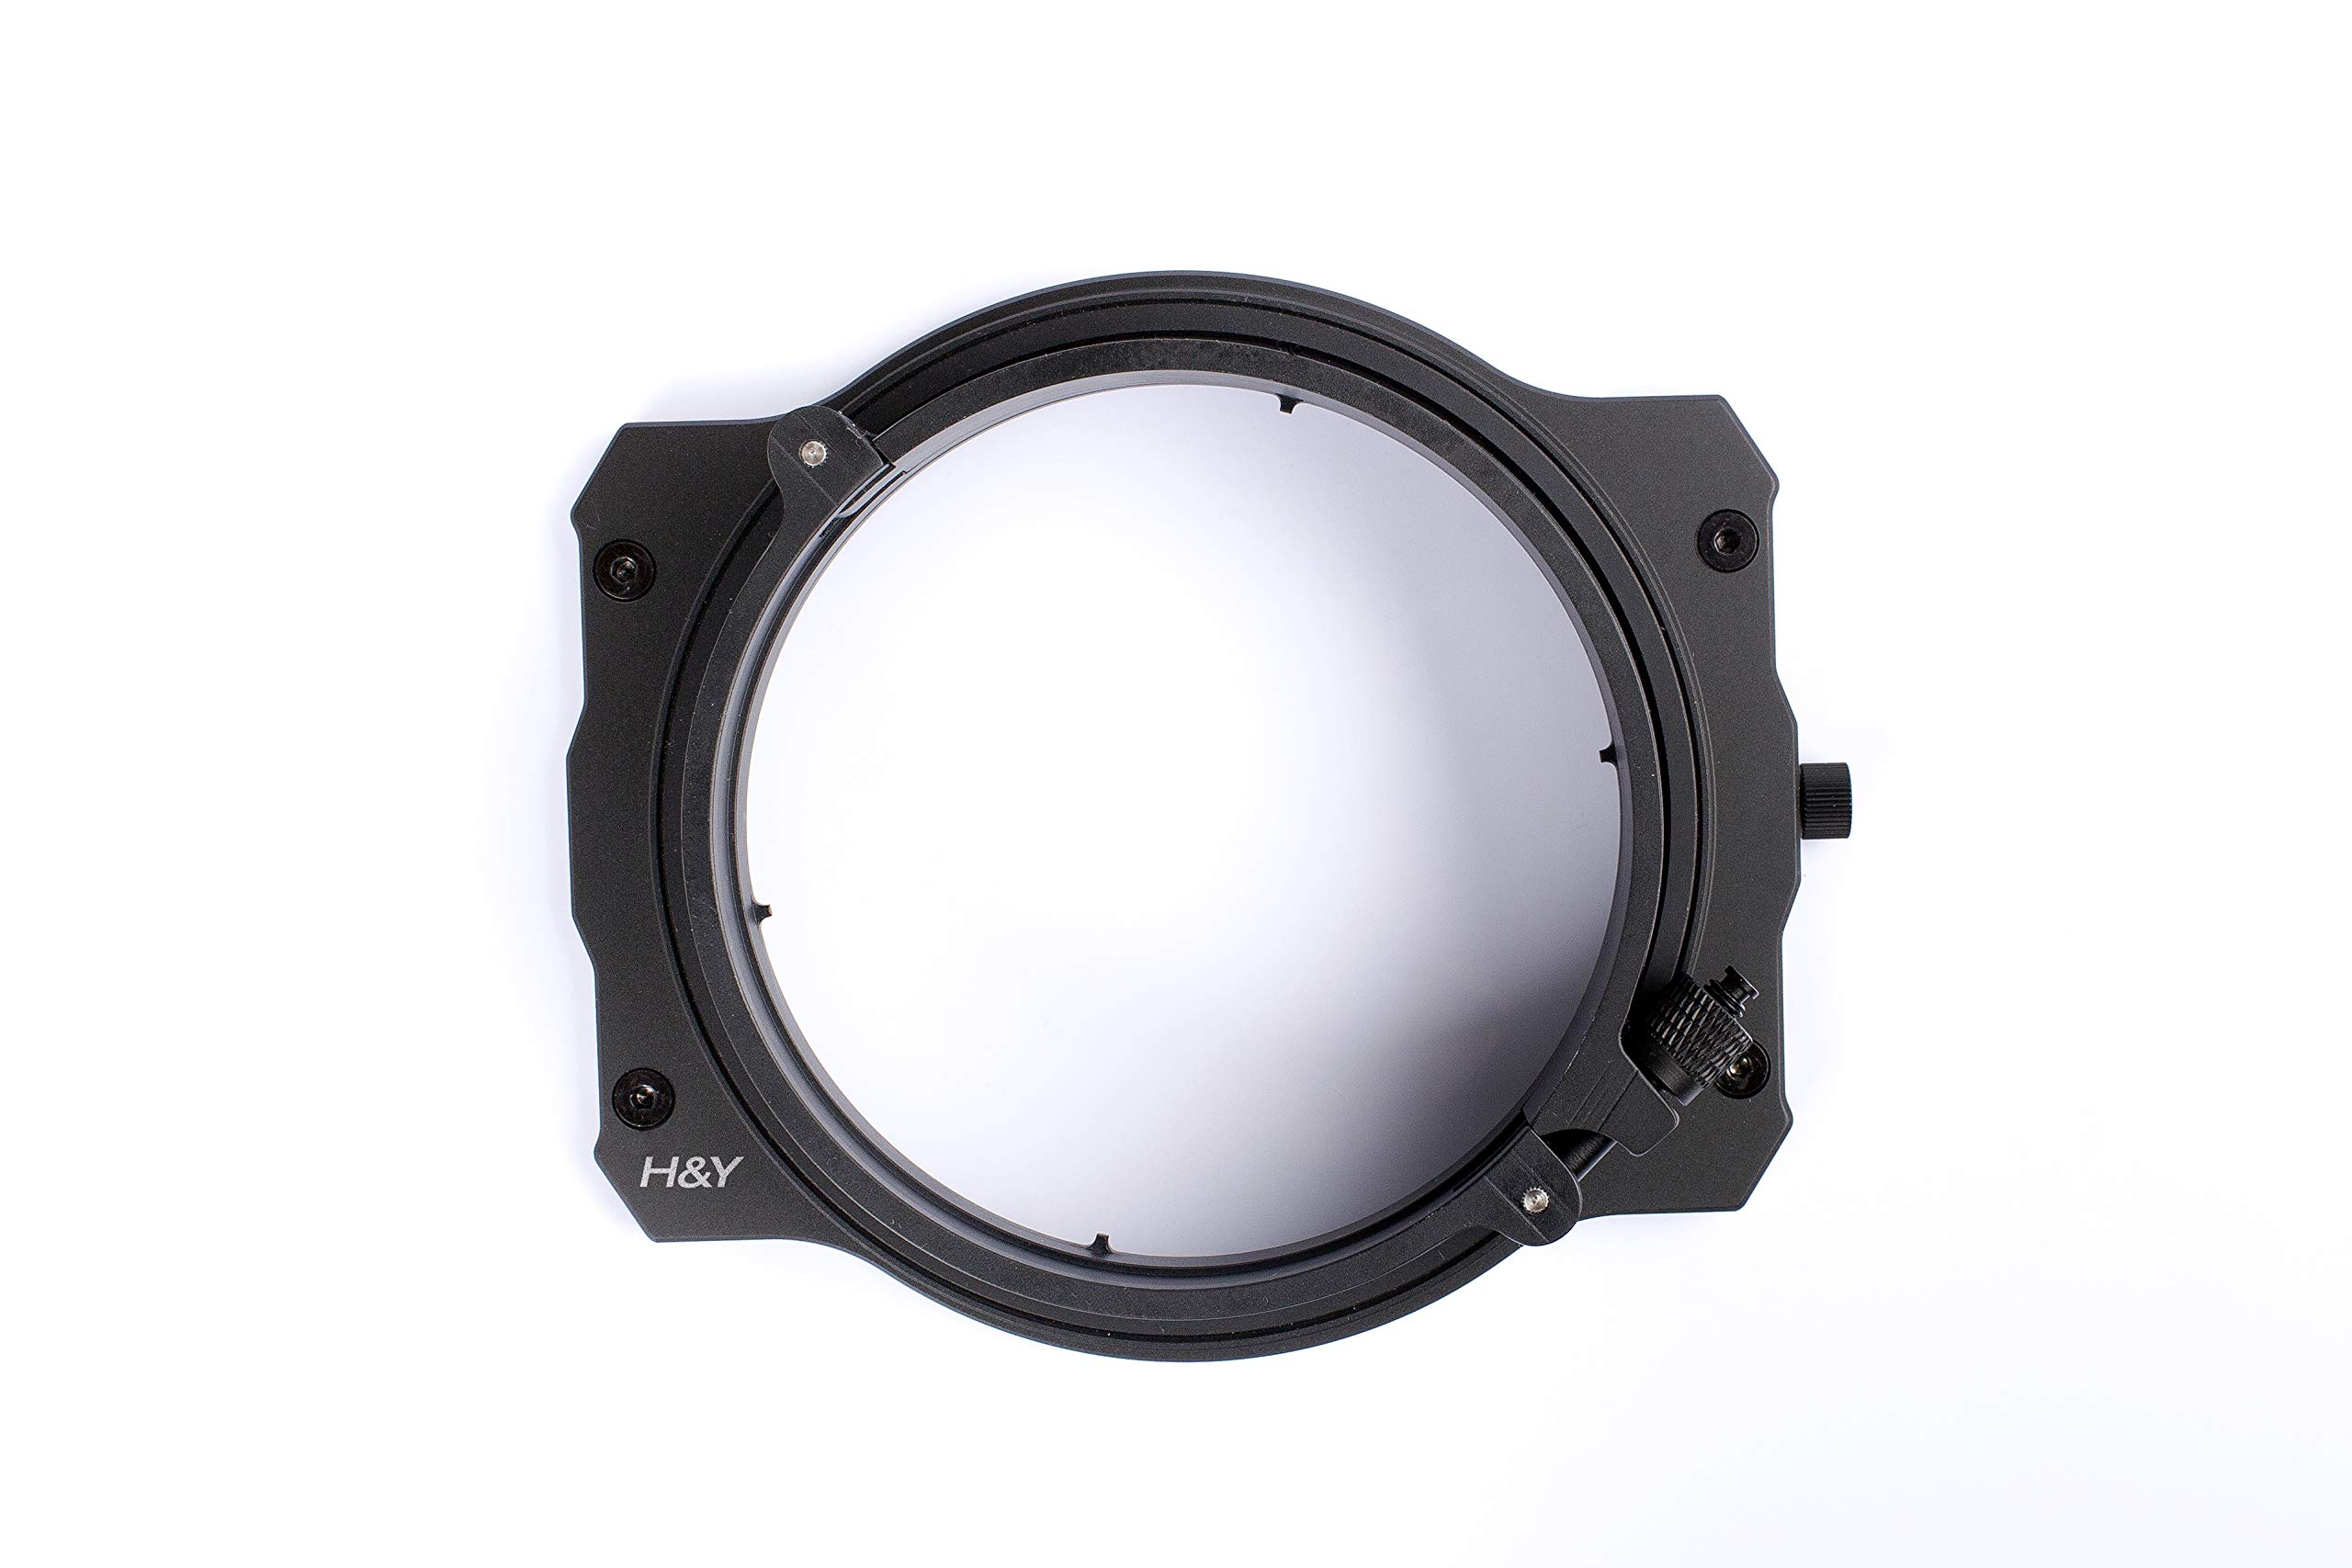 H&Y K- Series Magnetic 100mm Holder for Fujifilm 8-16mm F2.8 Lens by H&Y Filters